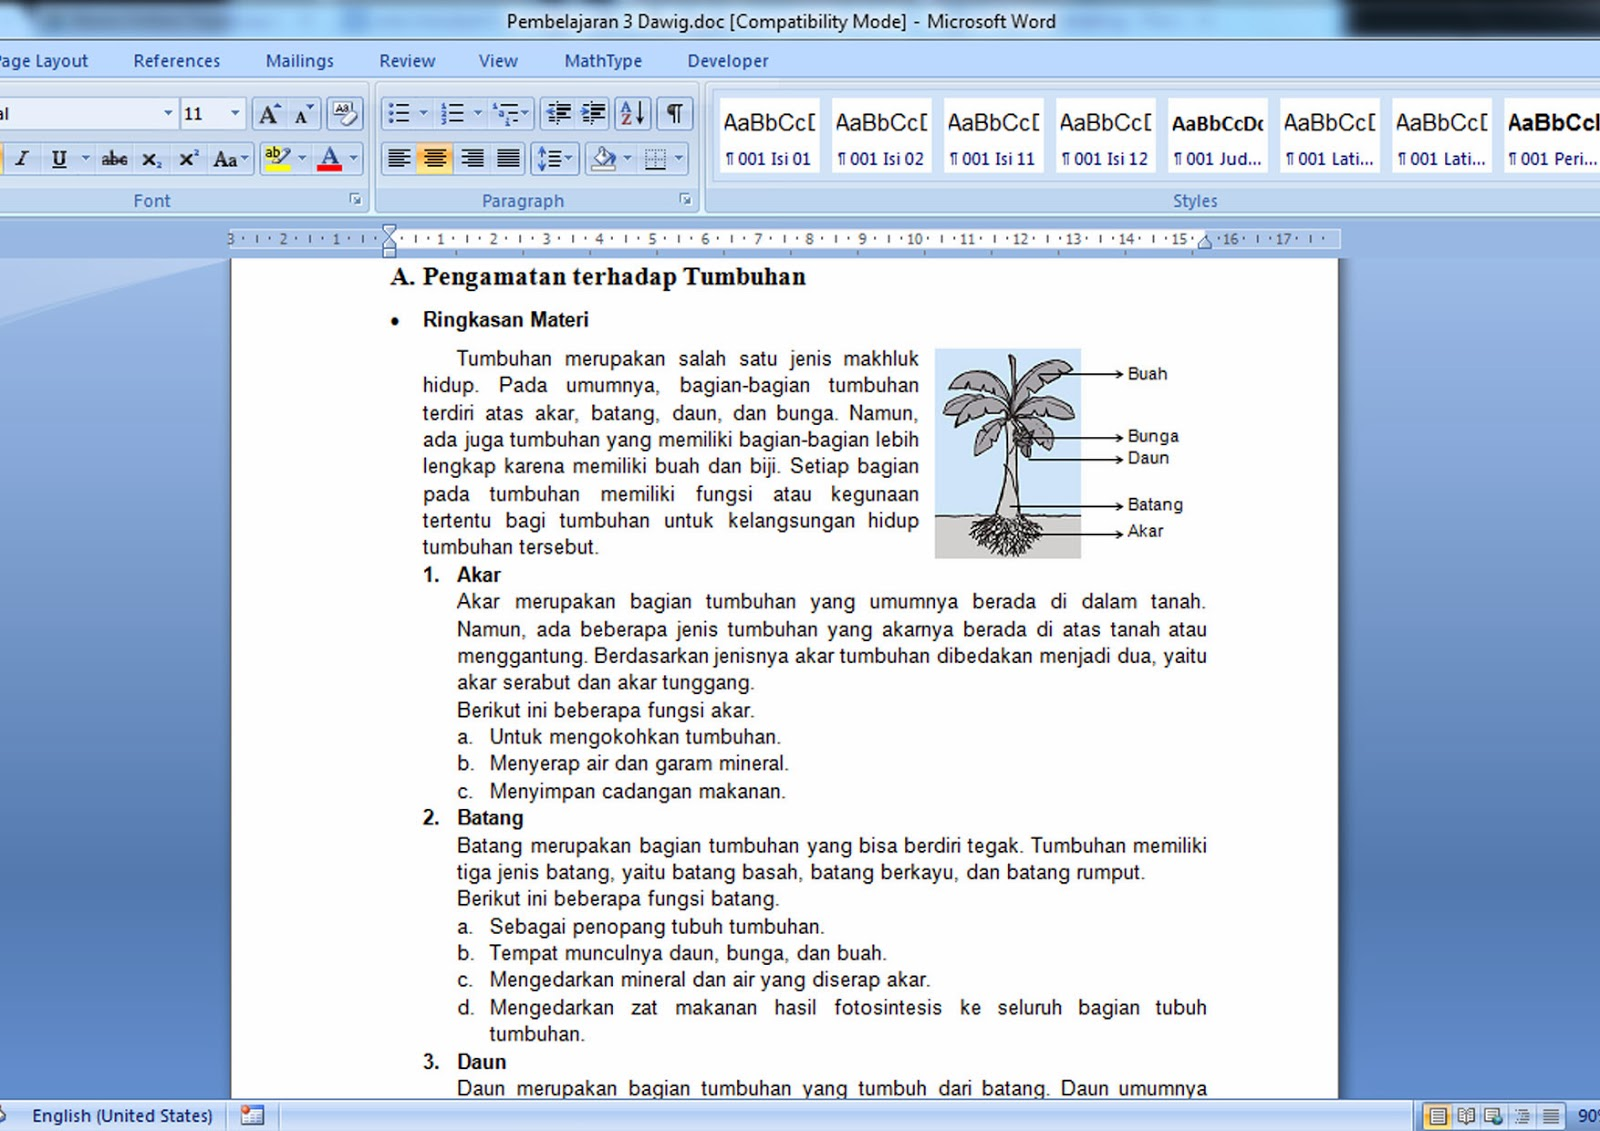 how to open pagemaker file in word